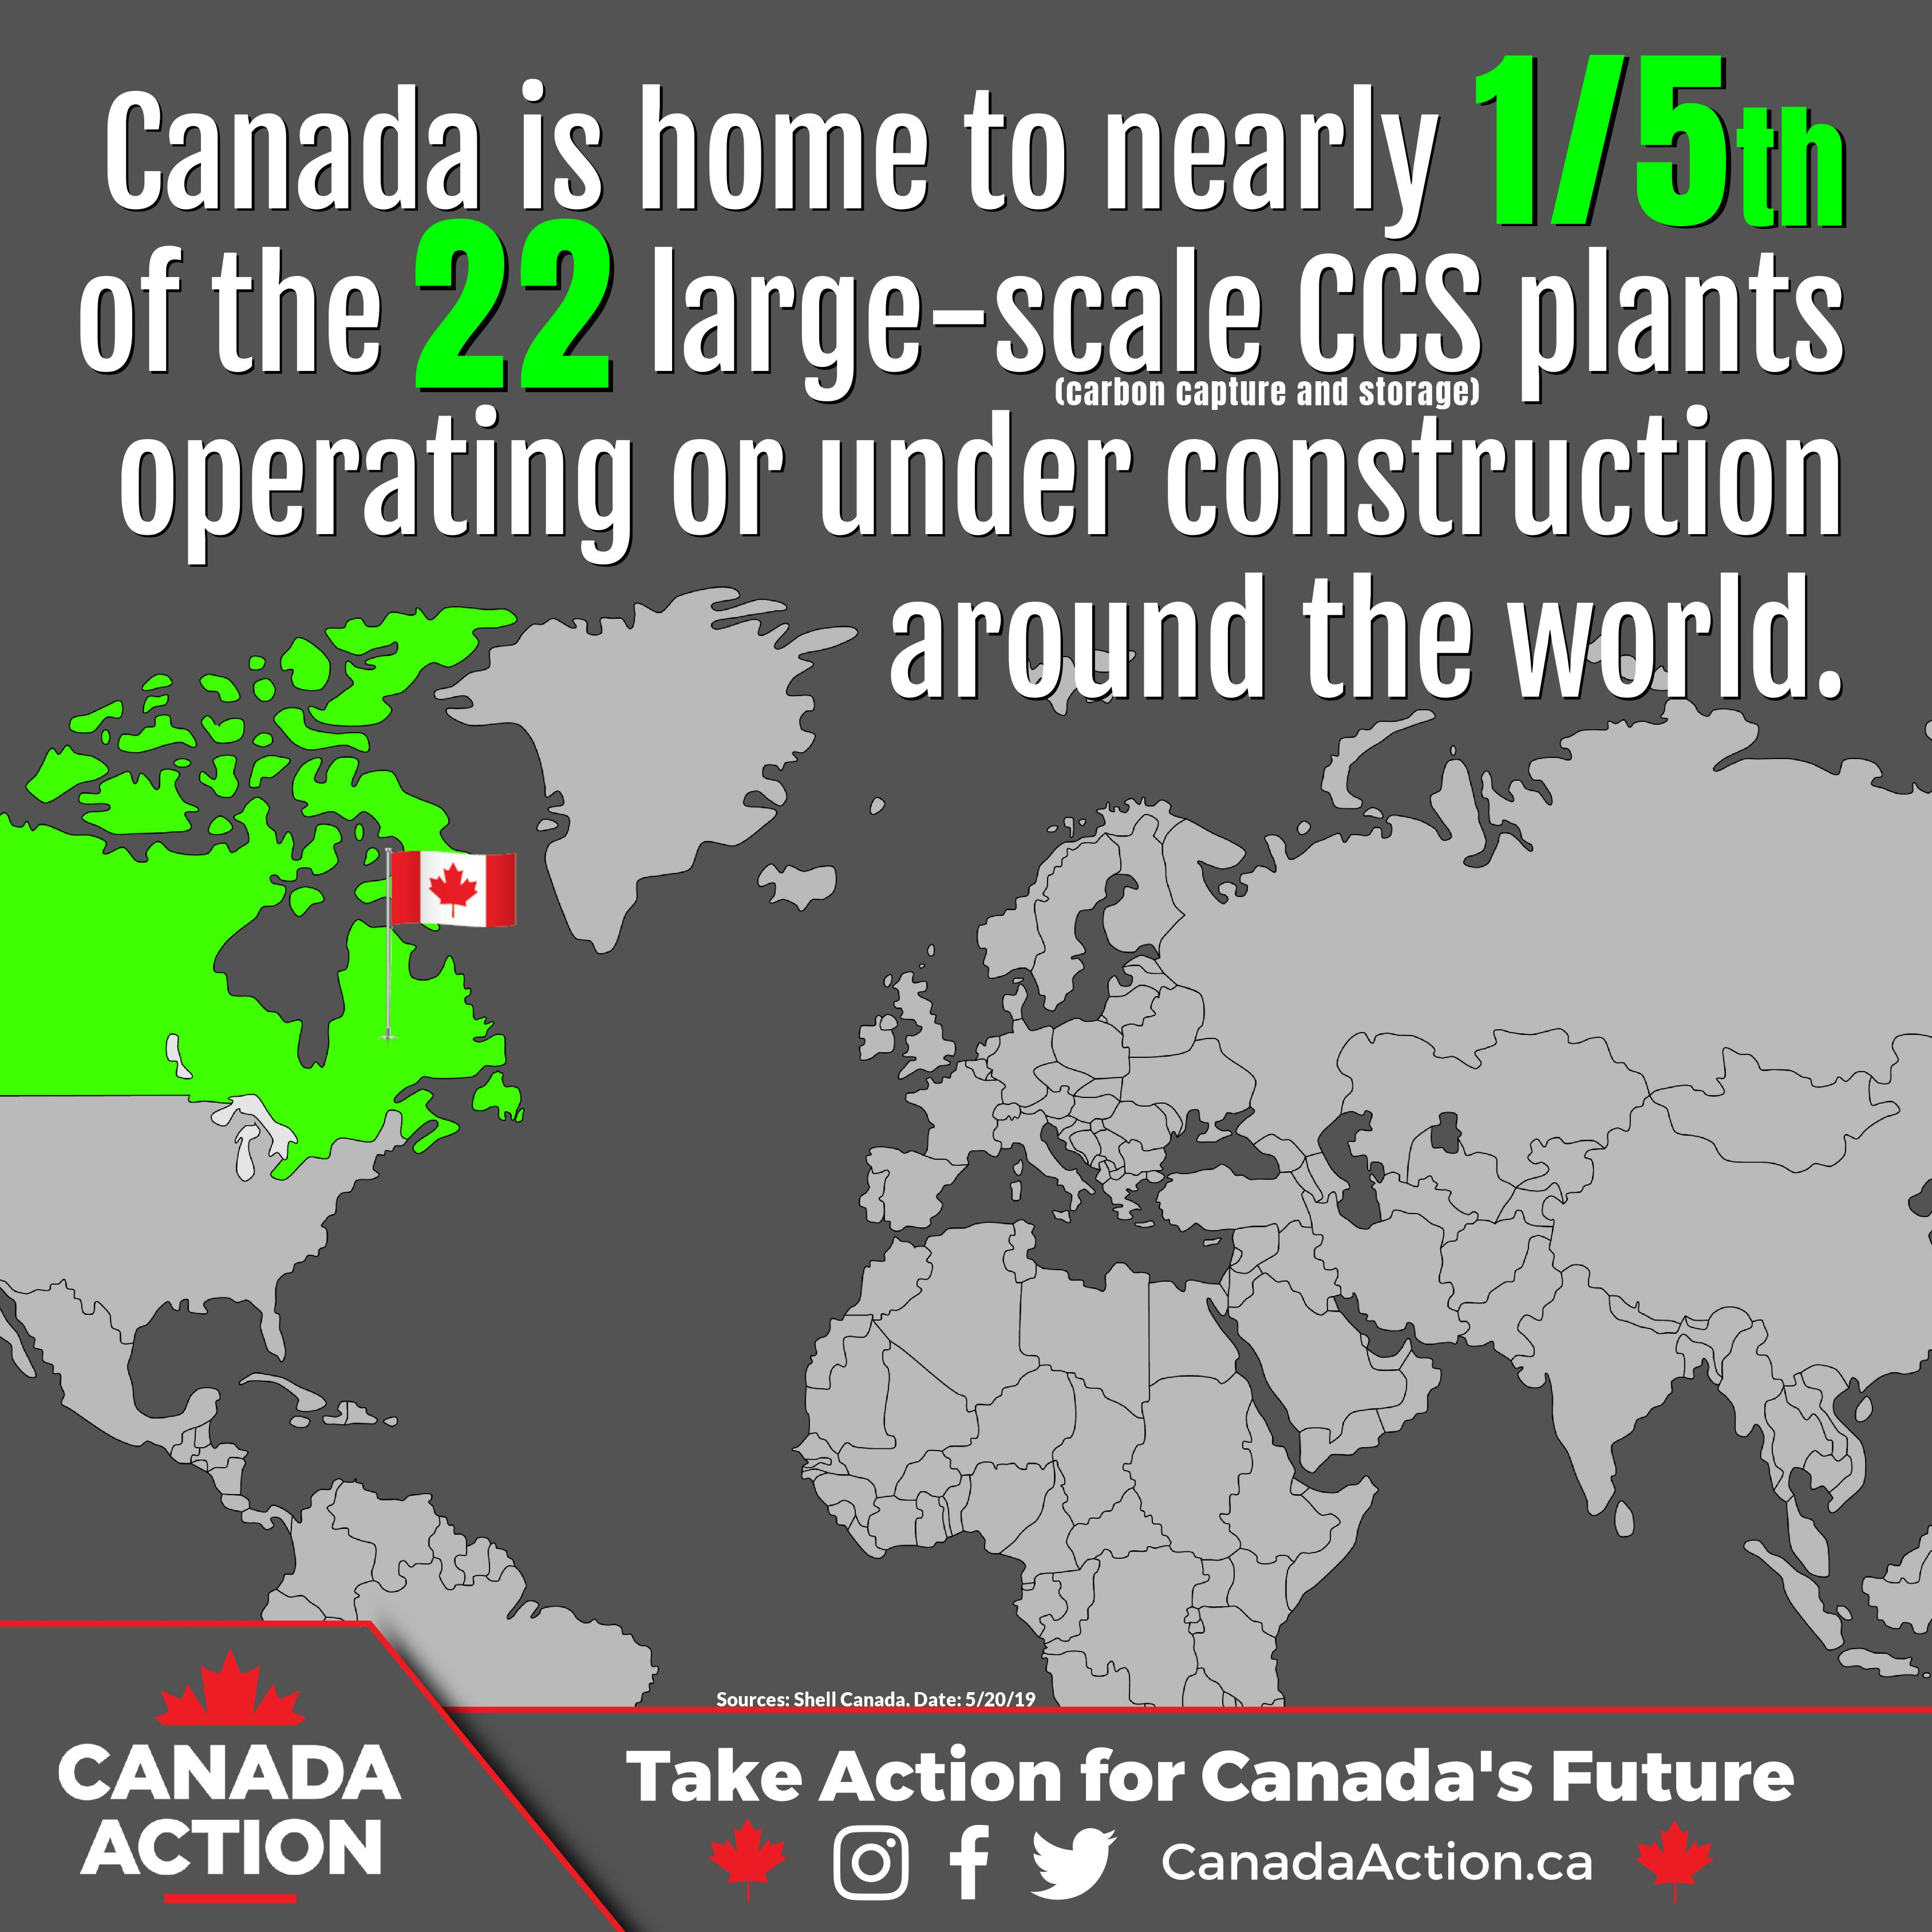 Canada is Home to 1/5th of Commercial Carbon Capture Facilities in the World